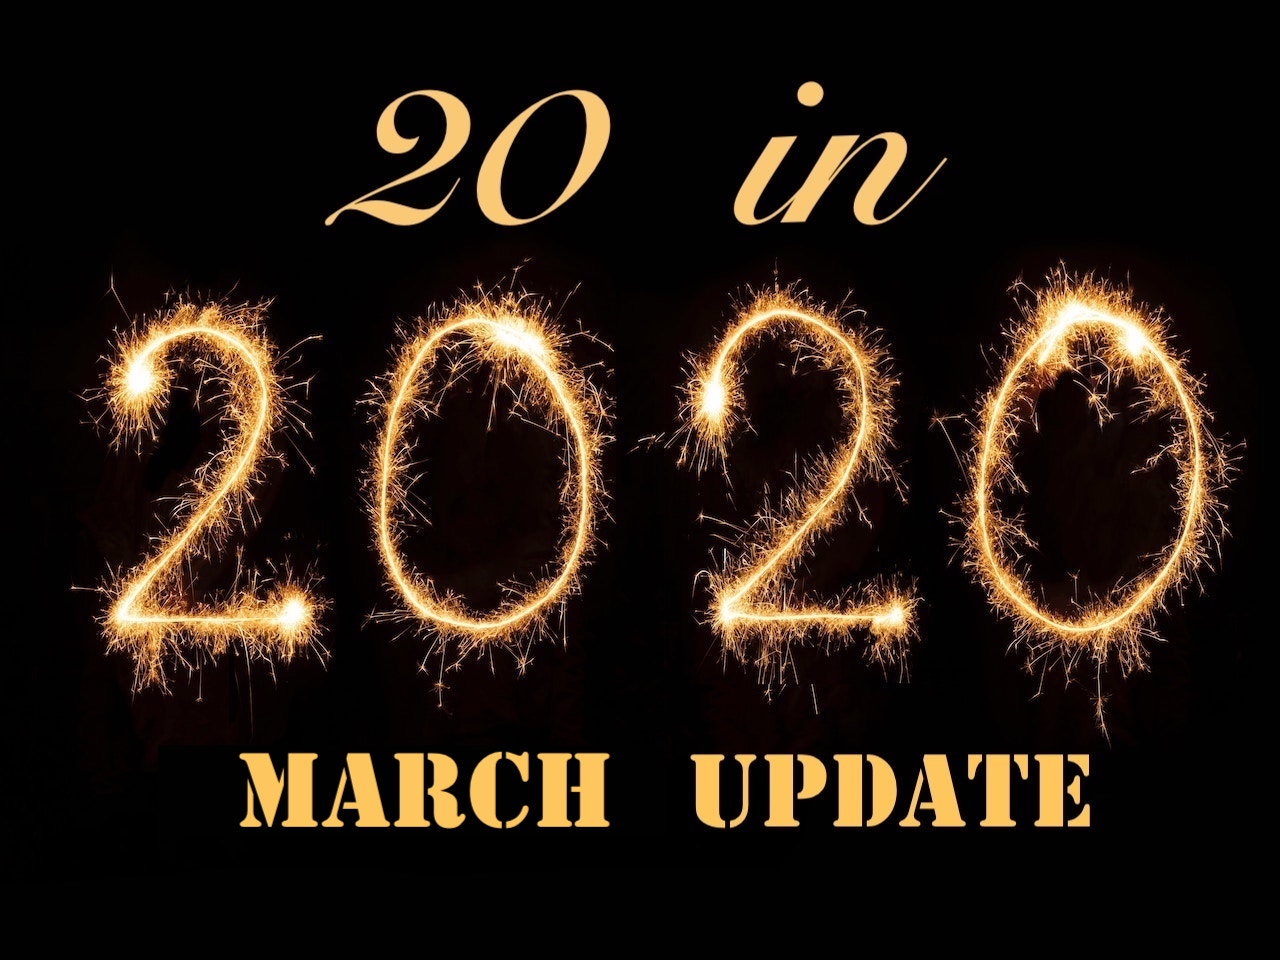 March Update on 20 in 2020